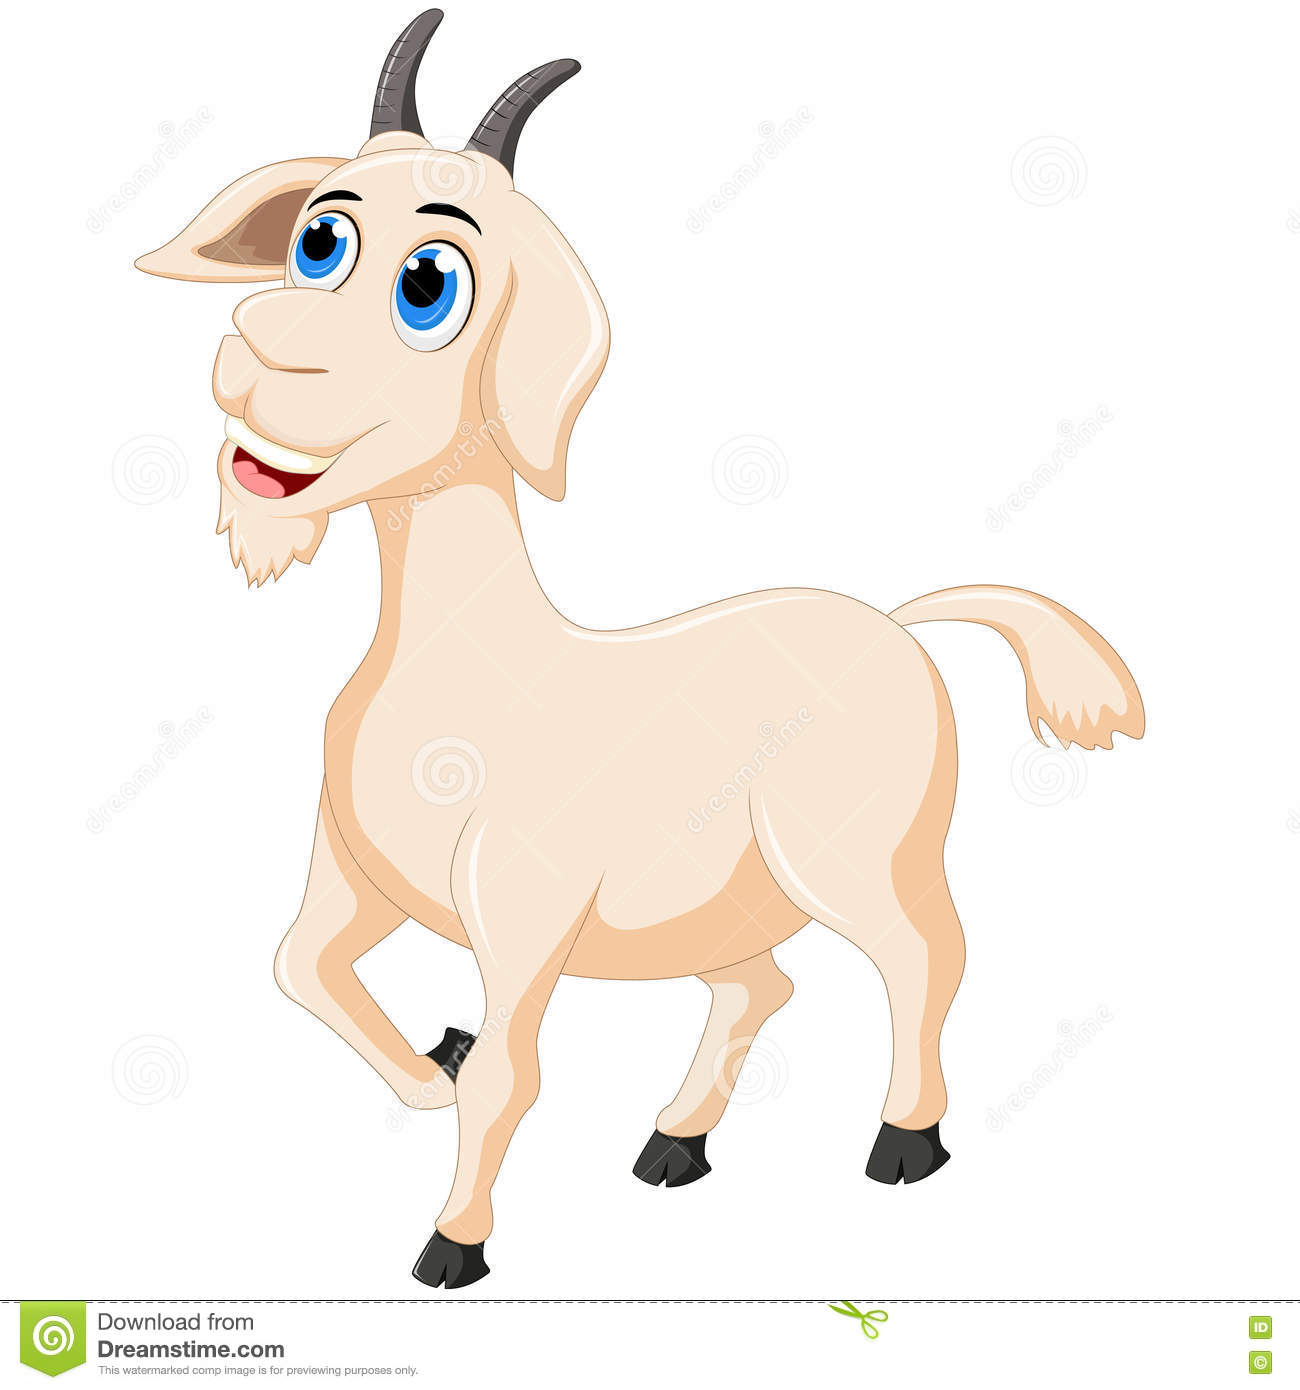 Cute Goat Clipart Cute Goat Cartoon Royalty Free Stock Photography